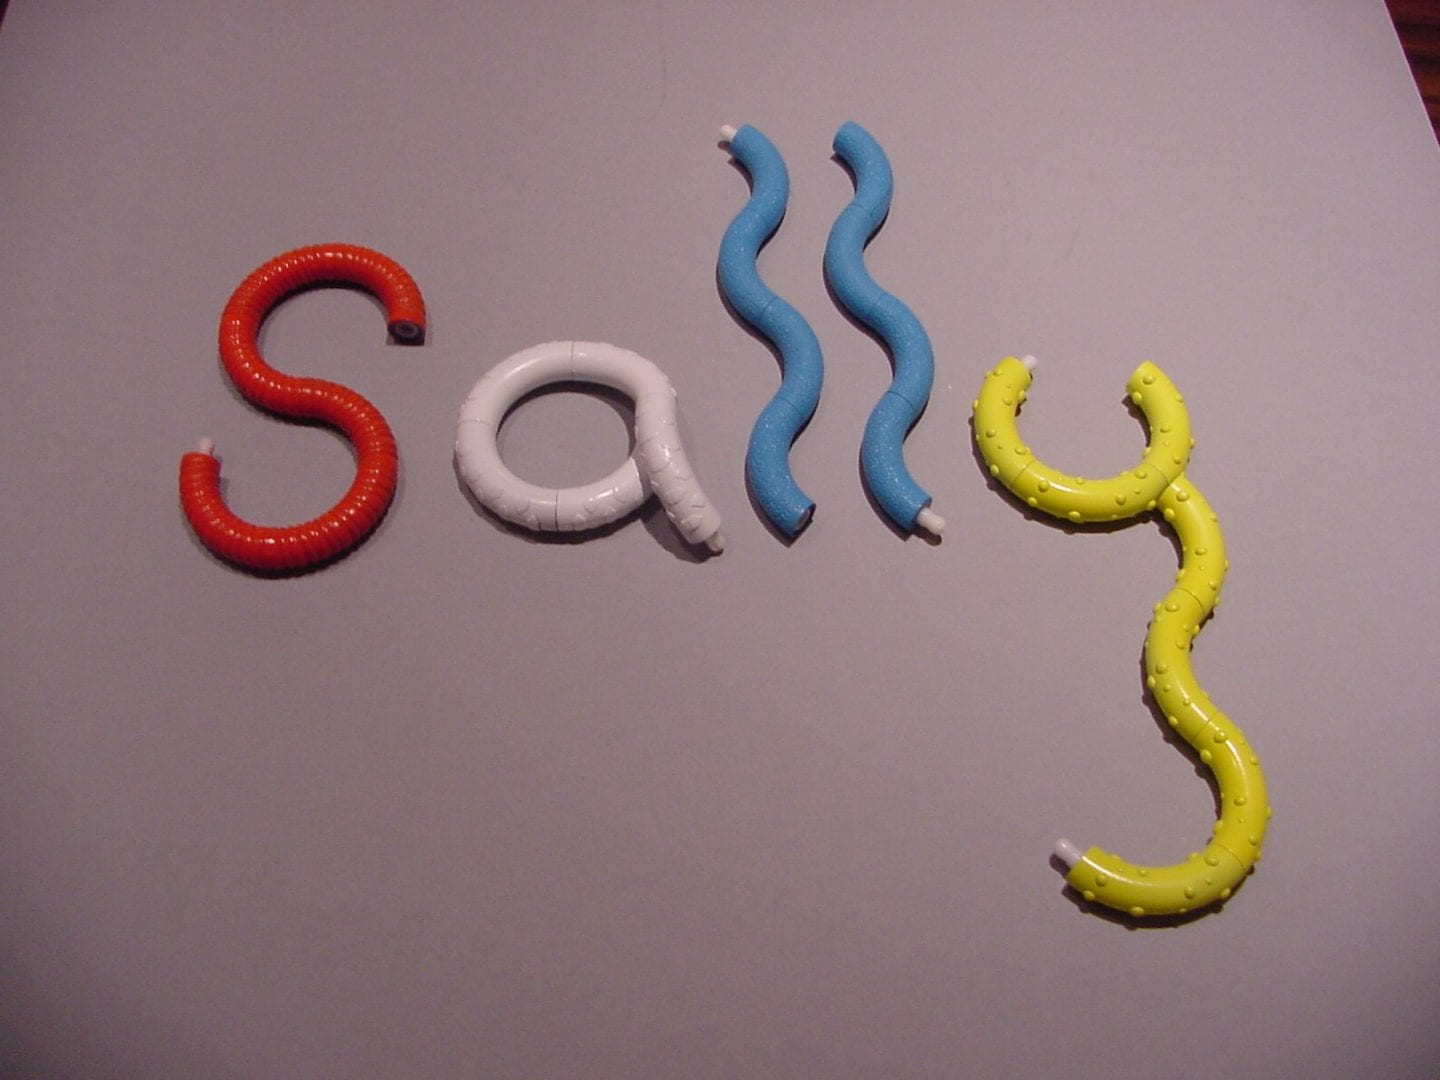 """photo of tangle toys spelling out the name """"sally"""" on a table top"""